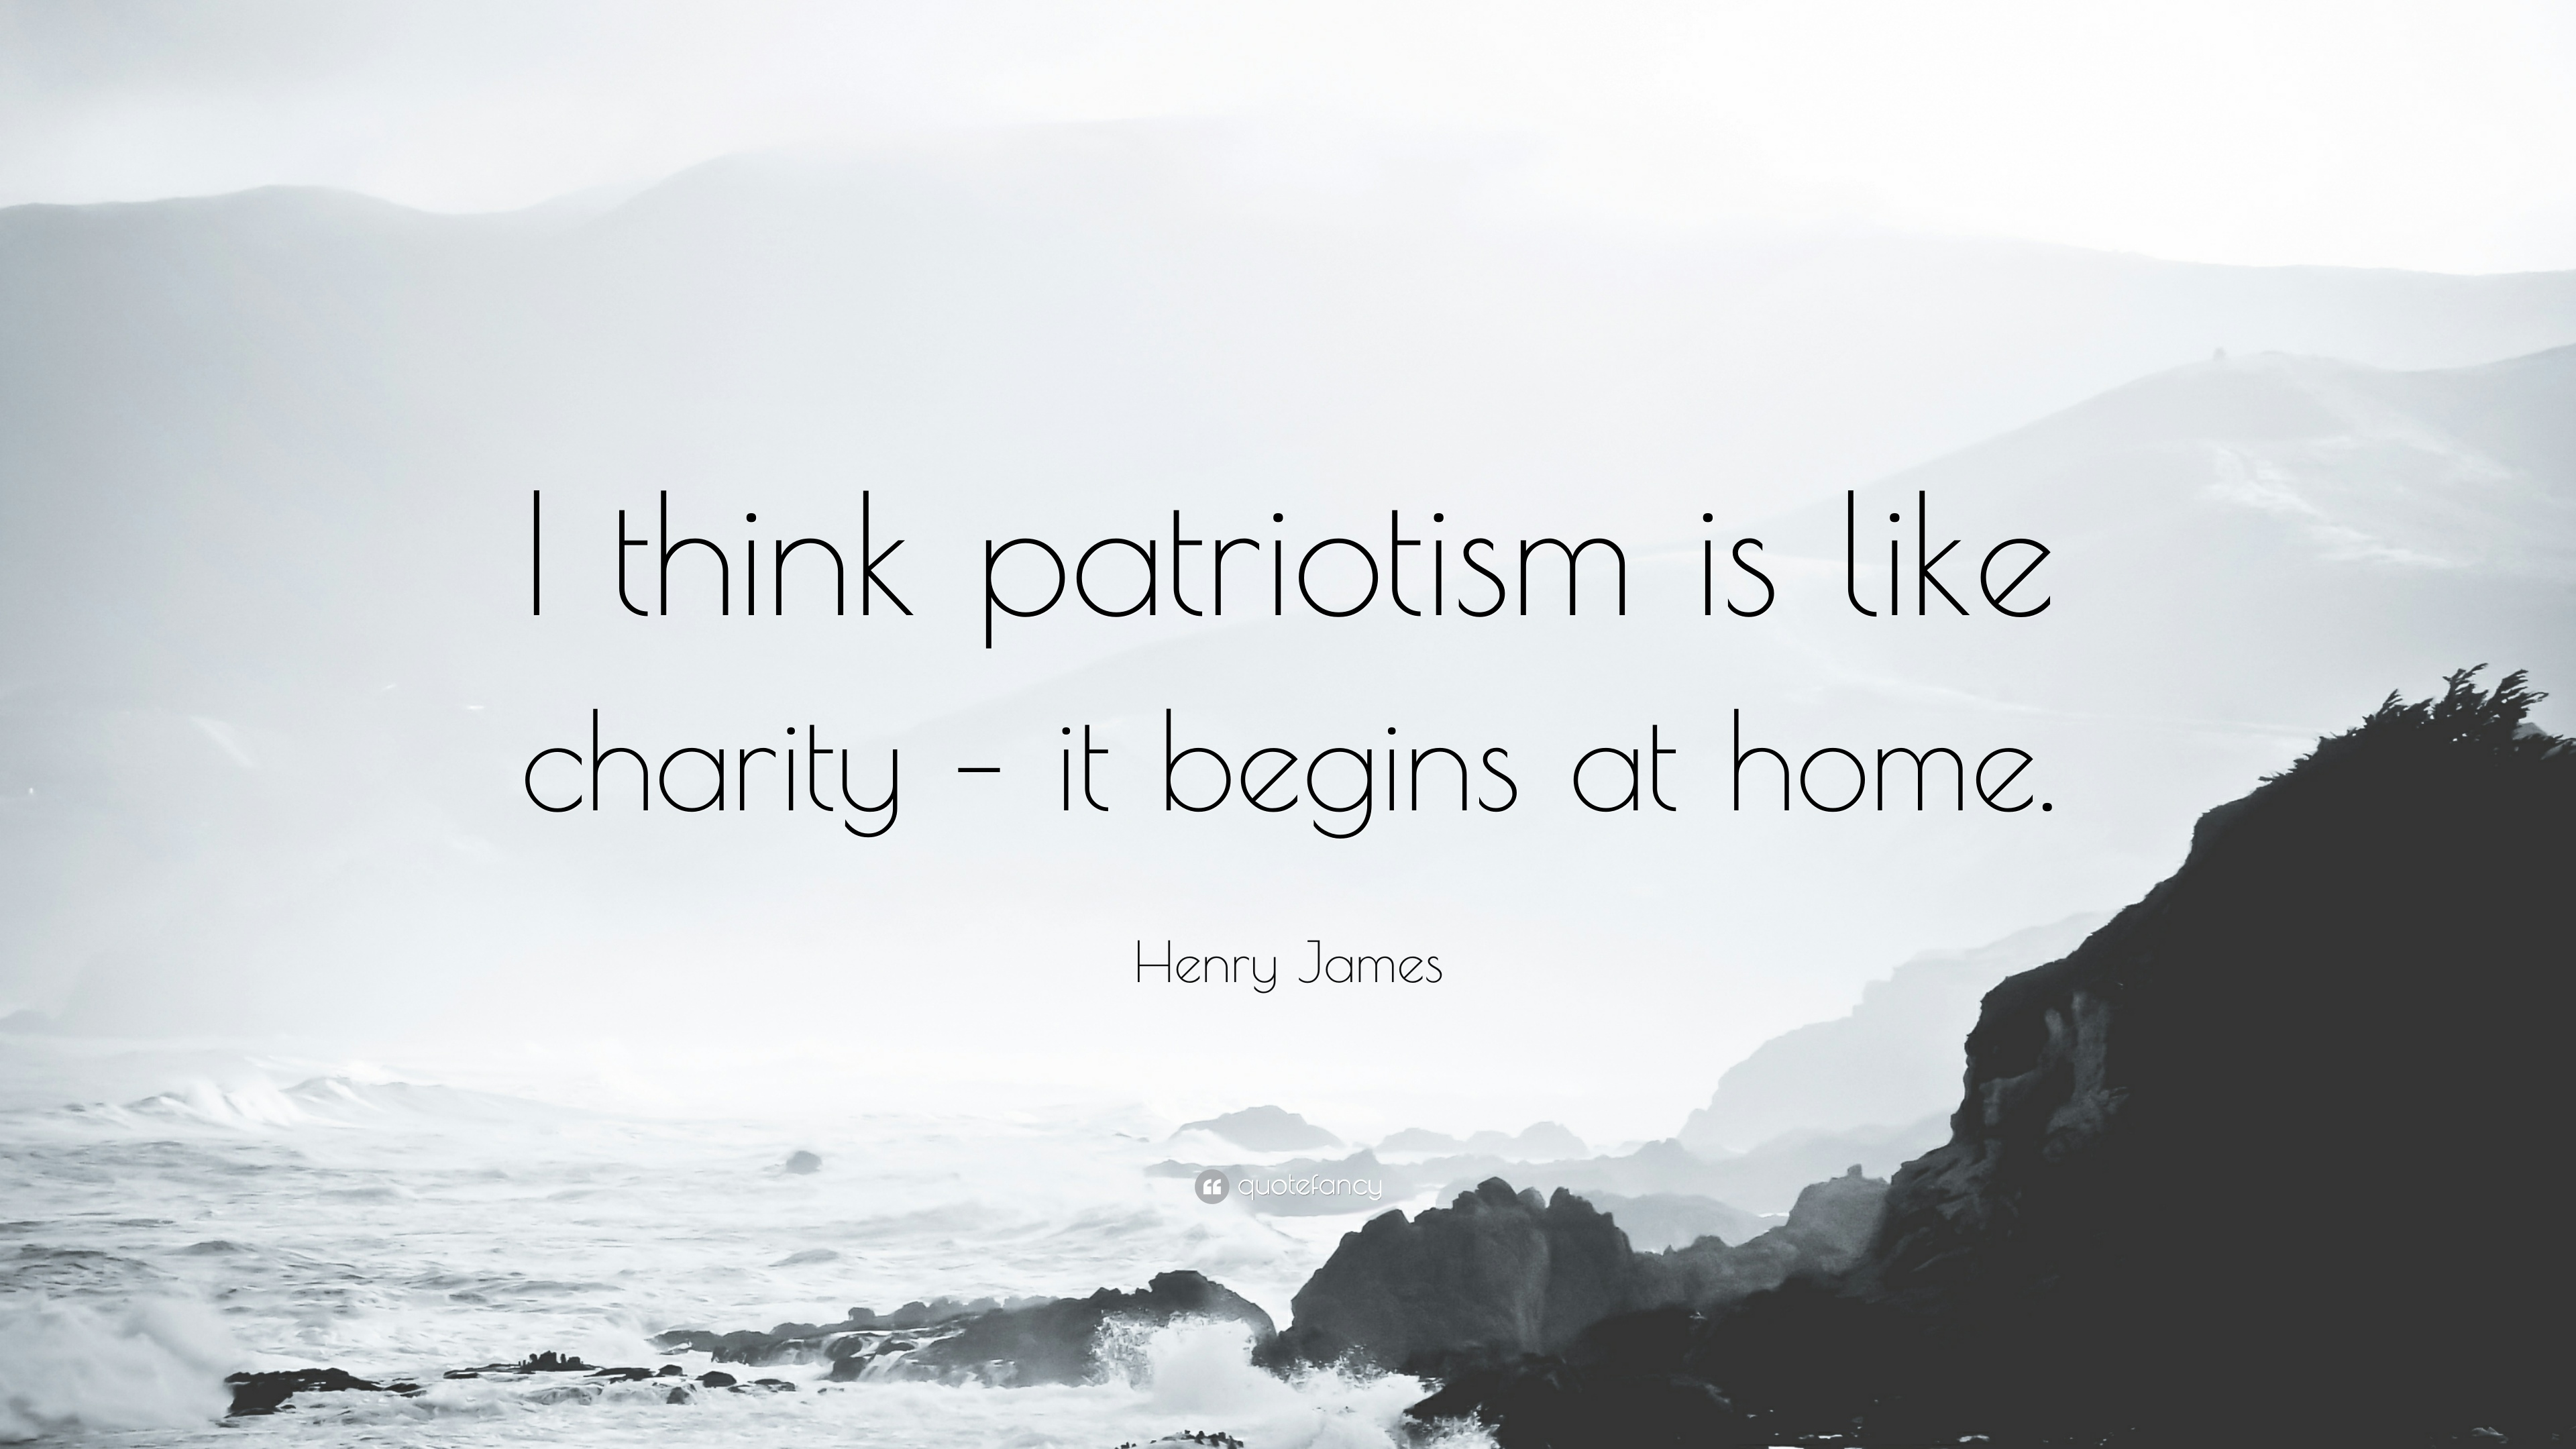 henry james and patriotism Henry james died in london, at the age of seventy-two, on  and so maybe it's  not surprising his paradoxically patriotic act (doing what he felt.